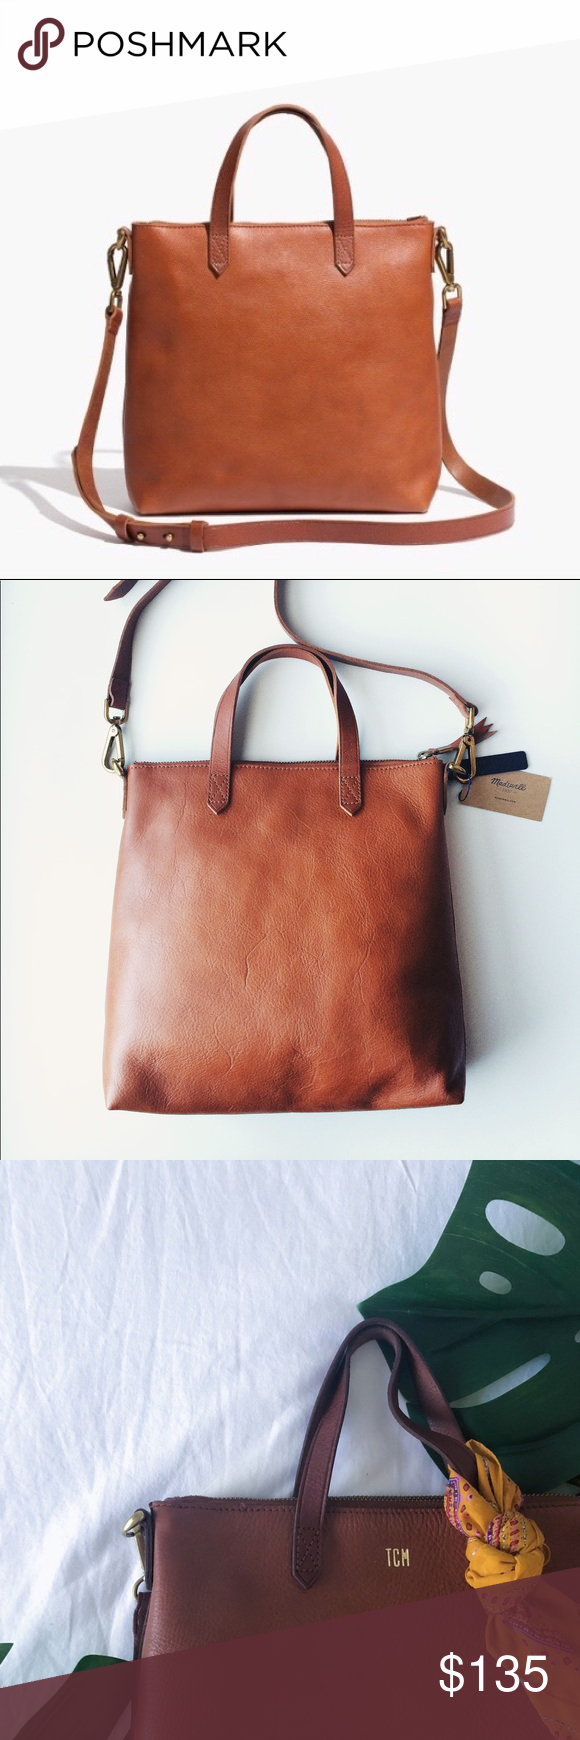 b99a590b0 Madewell small transport leather crossbody MADEWELL SMALL CROSSBODY TOTE  Color: English Saddle Use a few